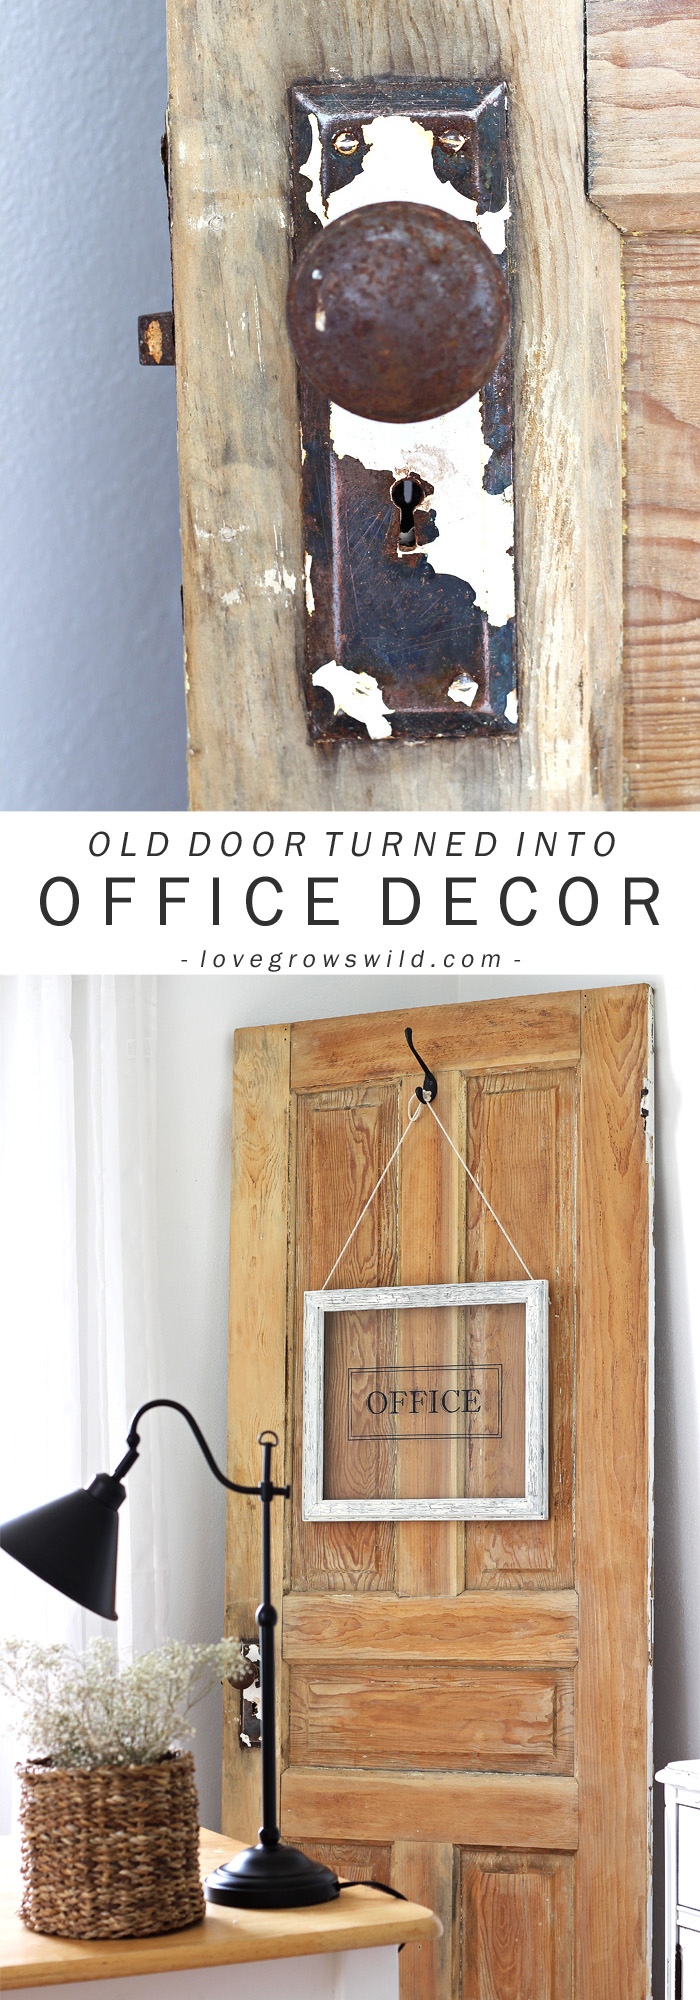 See how LoveGrowsWild.com turned a picture frame into a gorgeous hanging sign for her office